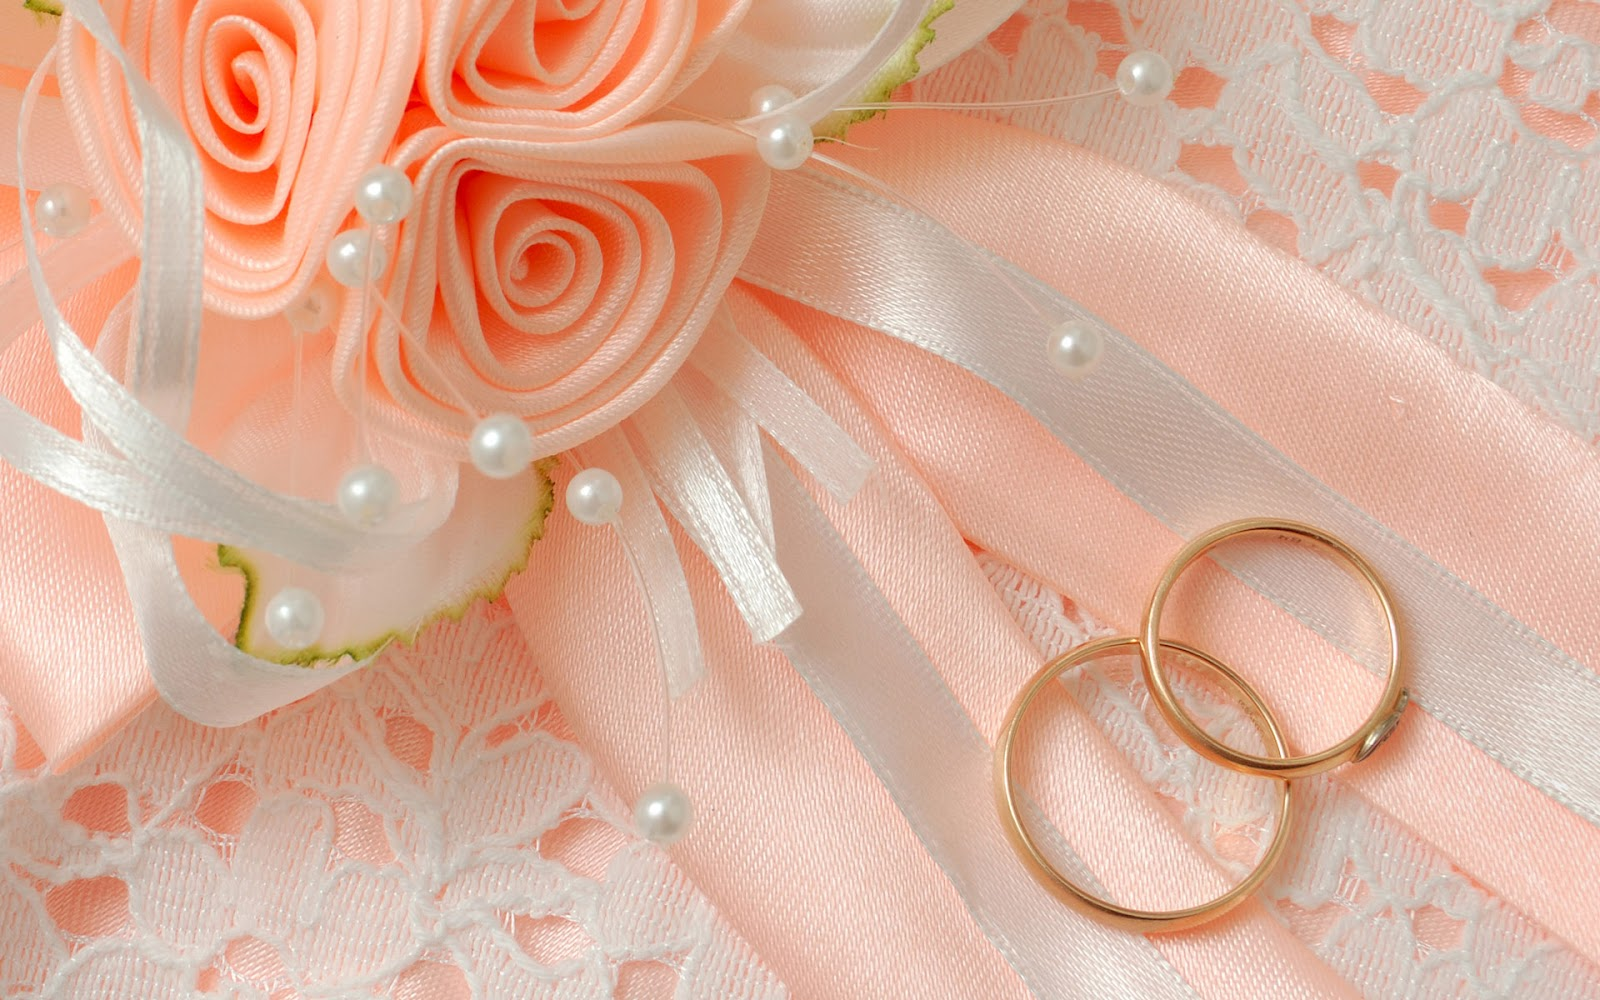 Peach Wedding Ring Background 1600x1000